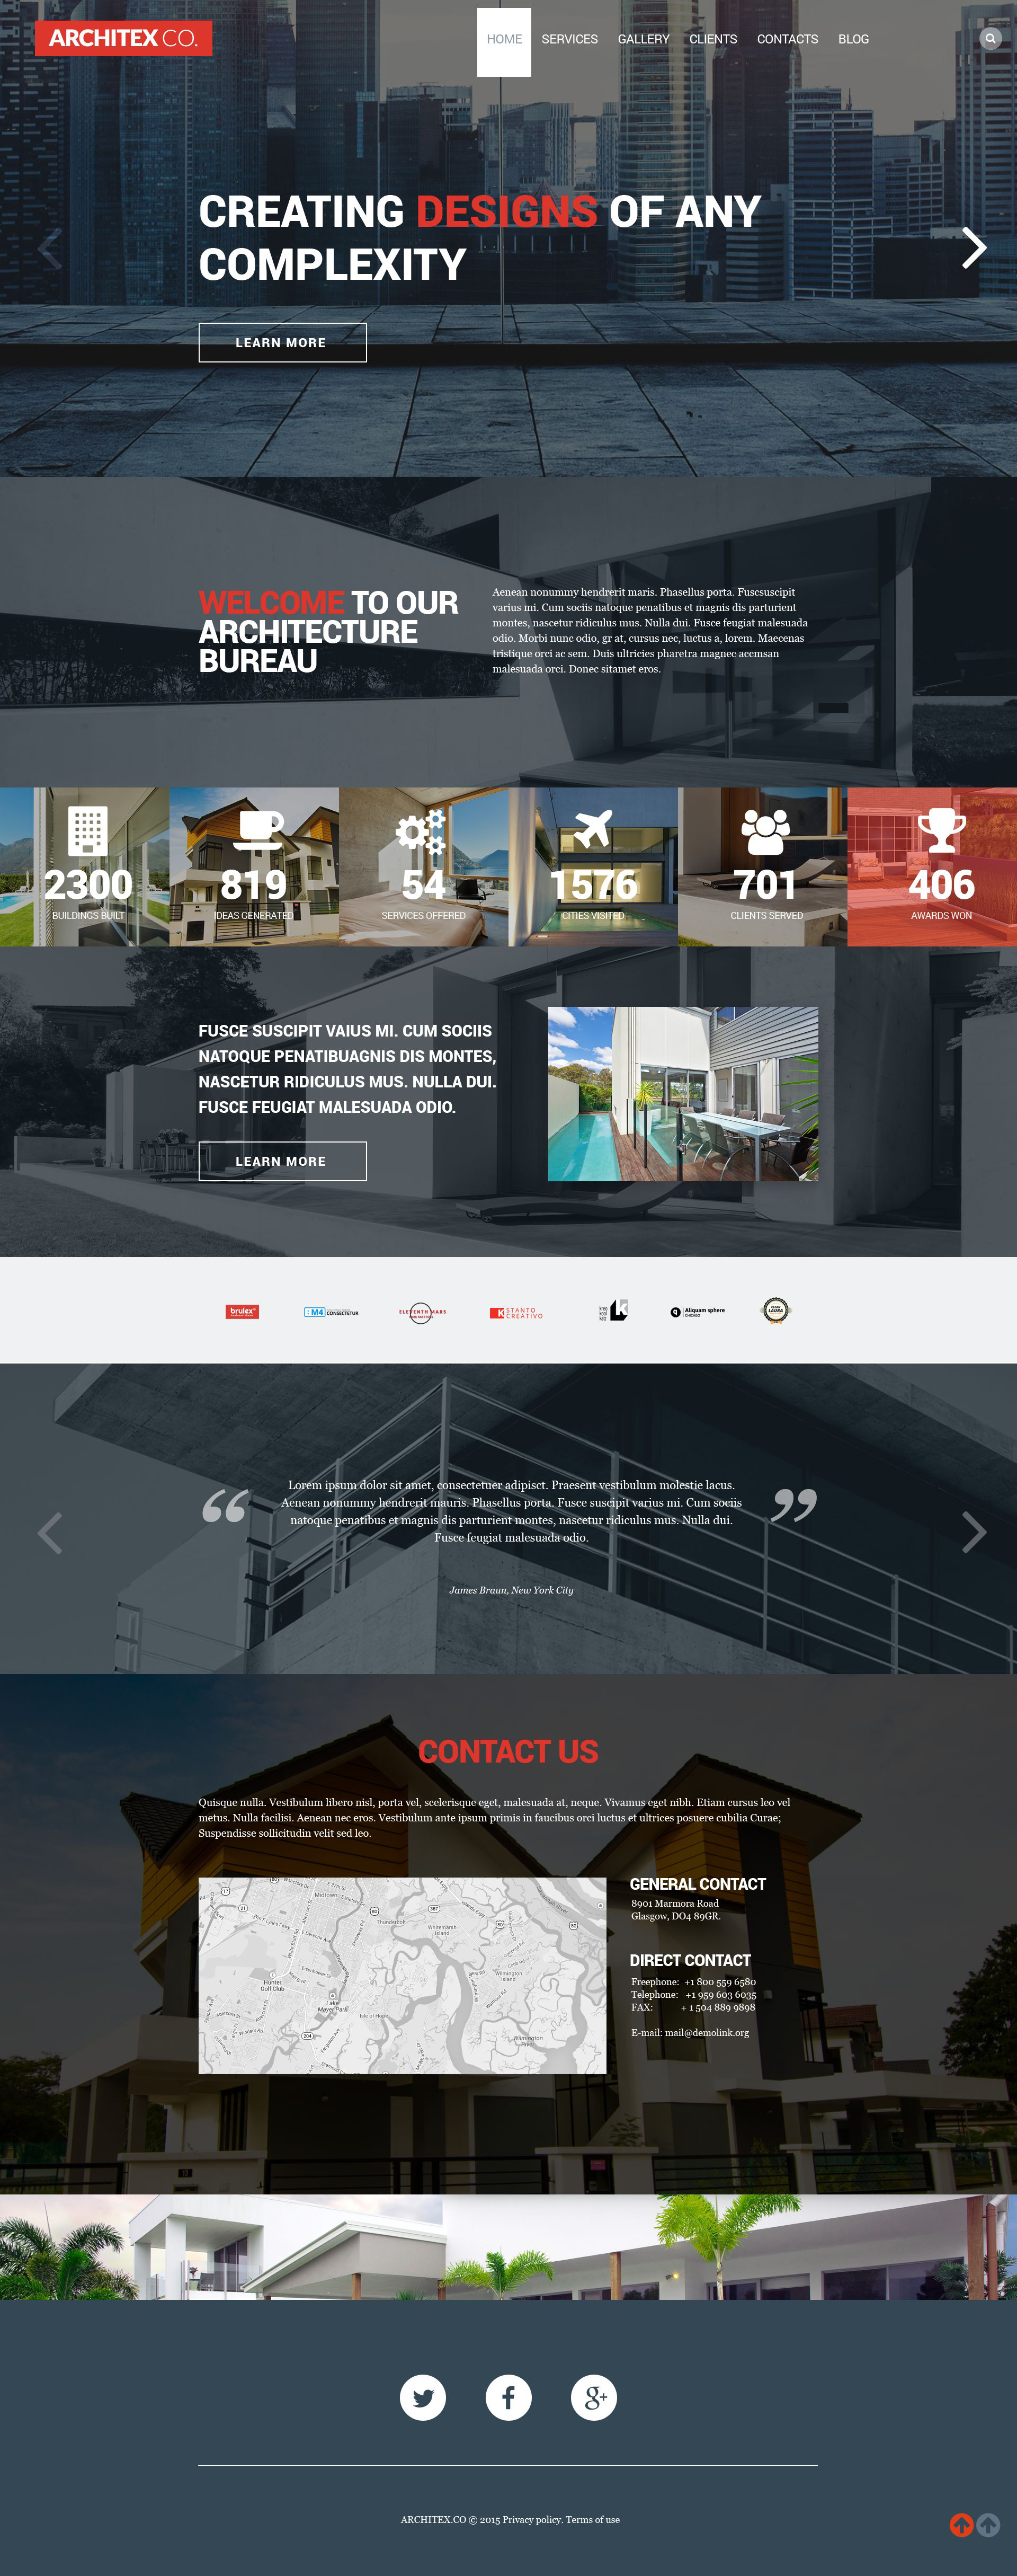 The Architex Co Architecture Company WordPress Design 53384, one of the best WordPress themes of its kind (art & photography, most popular), also known as Architex co architecture company WordPress template, architectural company bureau WordPress template, buildings WordPress template, technology WordPress template, innovation WordPress template, skyscrapers WordPress template, projects WordPress template, constructions WordPress template, houses WordPress template, work WordPress template, team WordPress template, strategy WordPress template, services WordPress template, support WordPress template, planning WordPress template, custom design WordPress template, enterprise WordPress template, clients WordPress template, partners WordPress template, esteem and related with Architex co architecture company, architectural company bureau, buildings, technology, innovation, skyscrapers, projects, constructions, houses, work, team, strategy, services, support, planning, custom design, enterprise, clients, partners, esteem, etc.